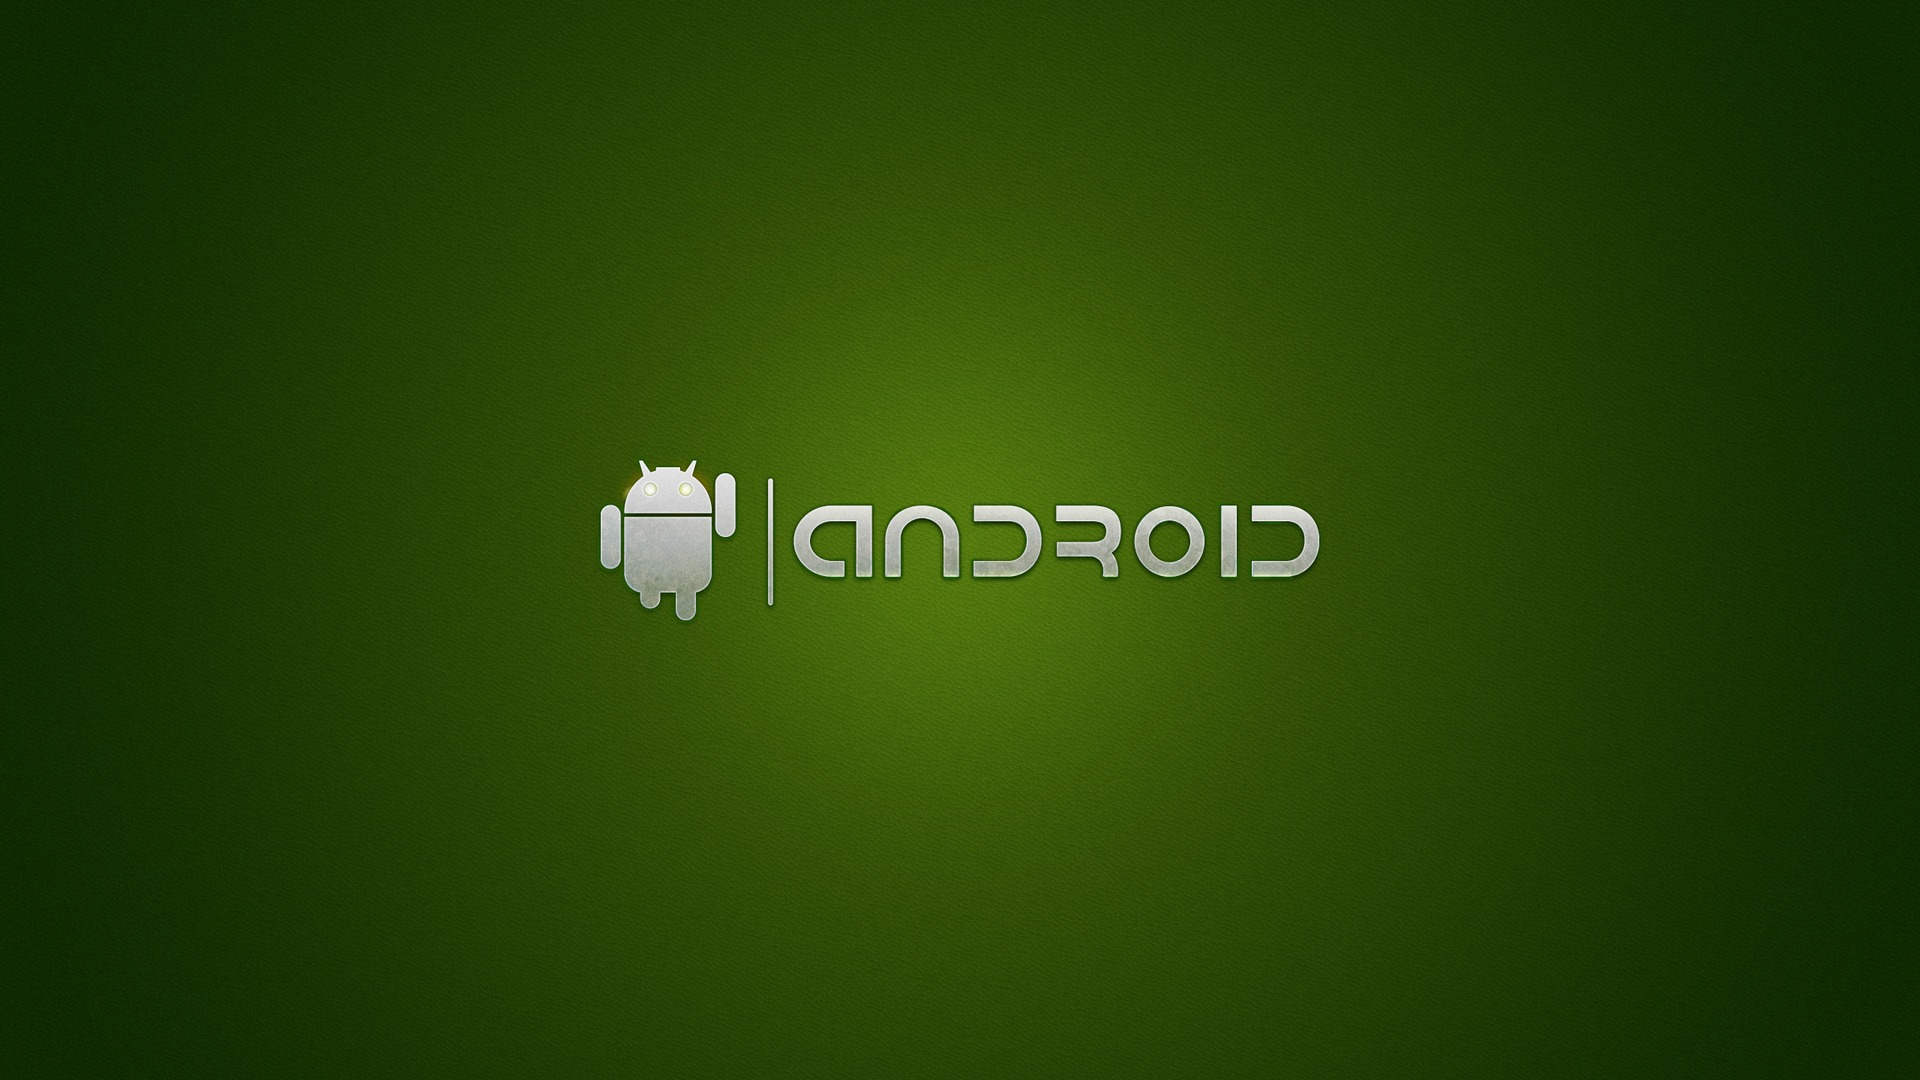 About Android devices Rooting - Image 1